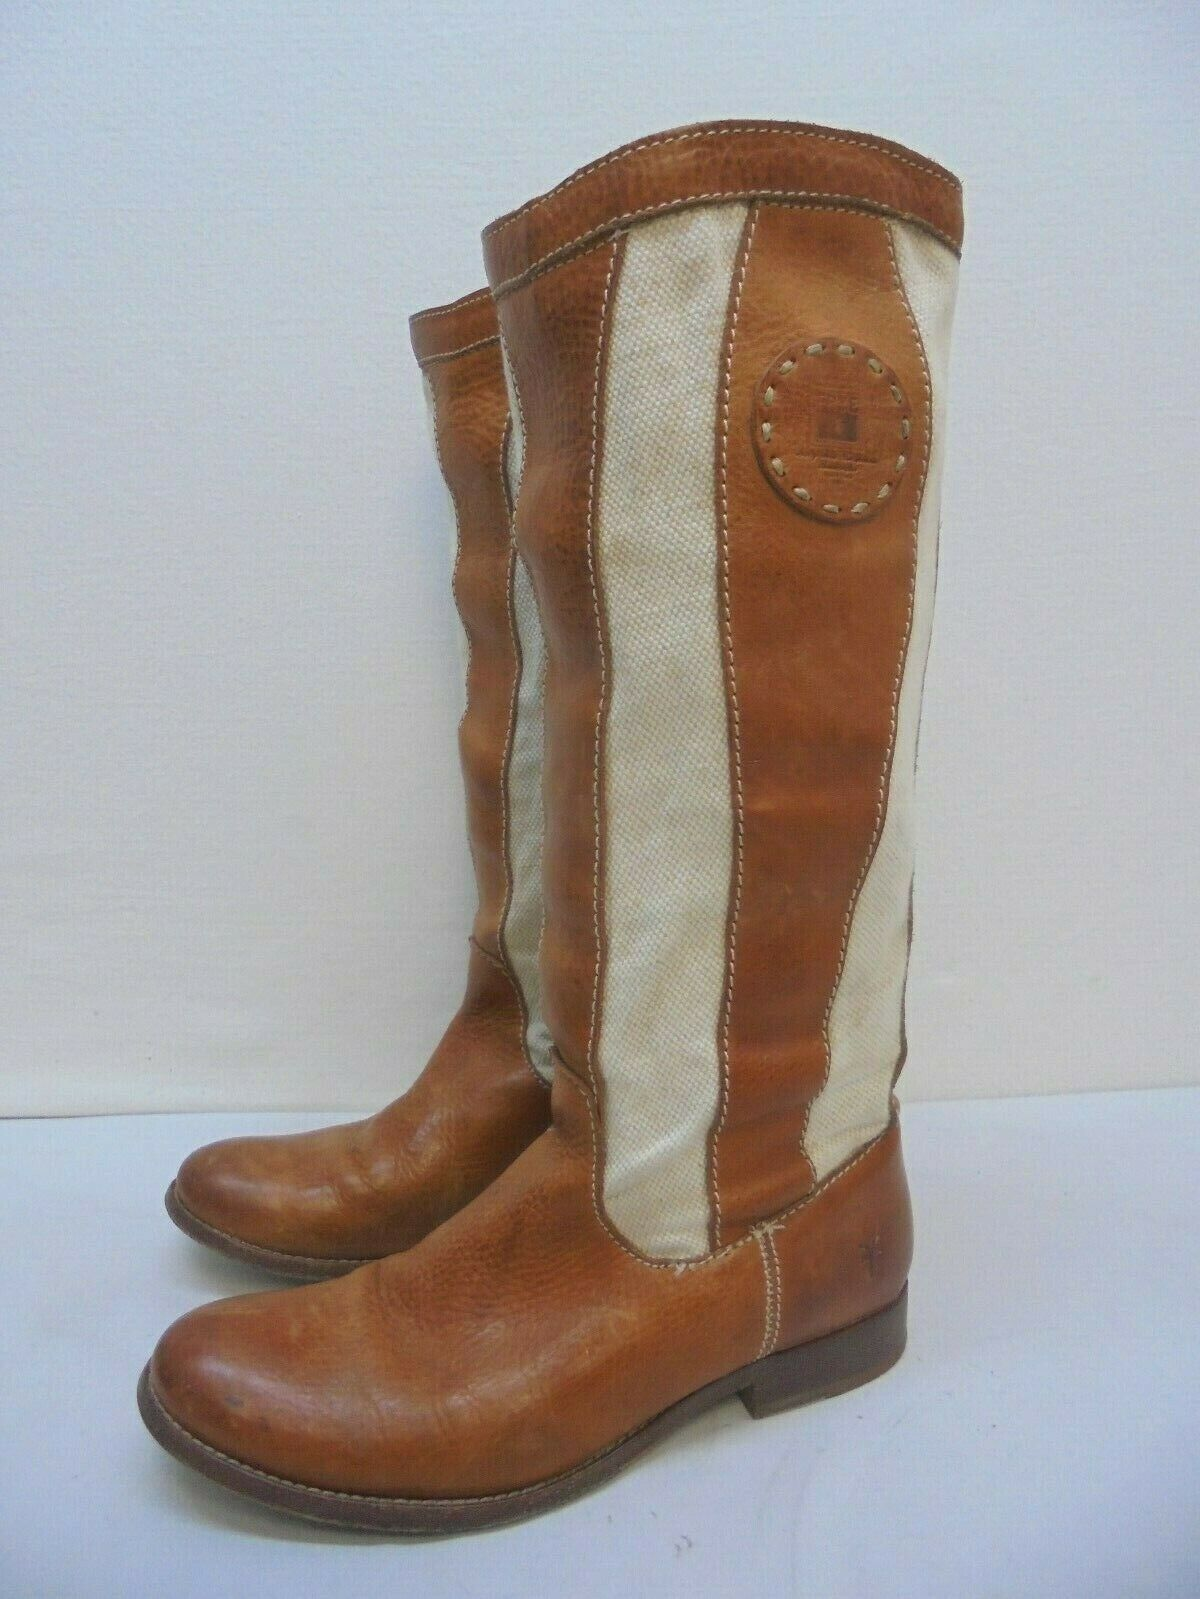 FRYE Brown Leather Canvas Melissa Cowboy Boots Women's Size 7.5 B Style 77117